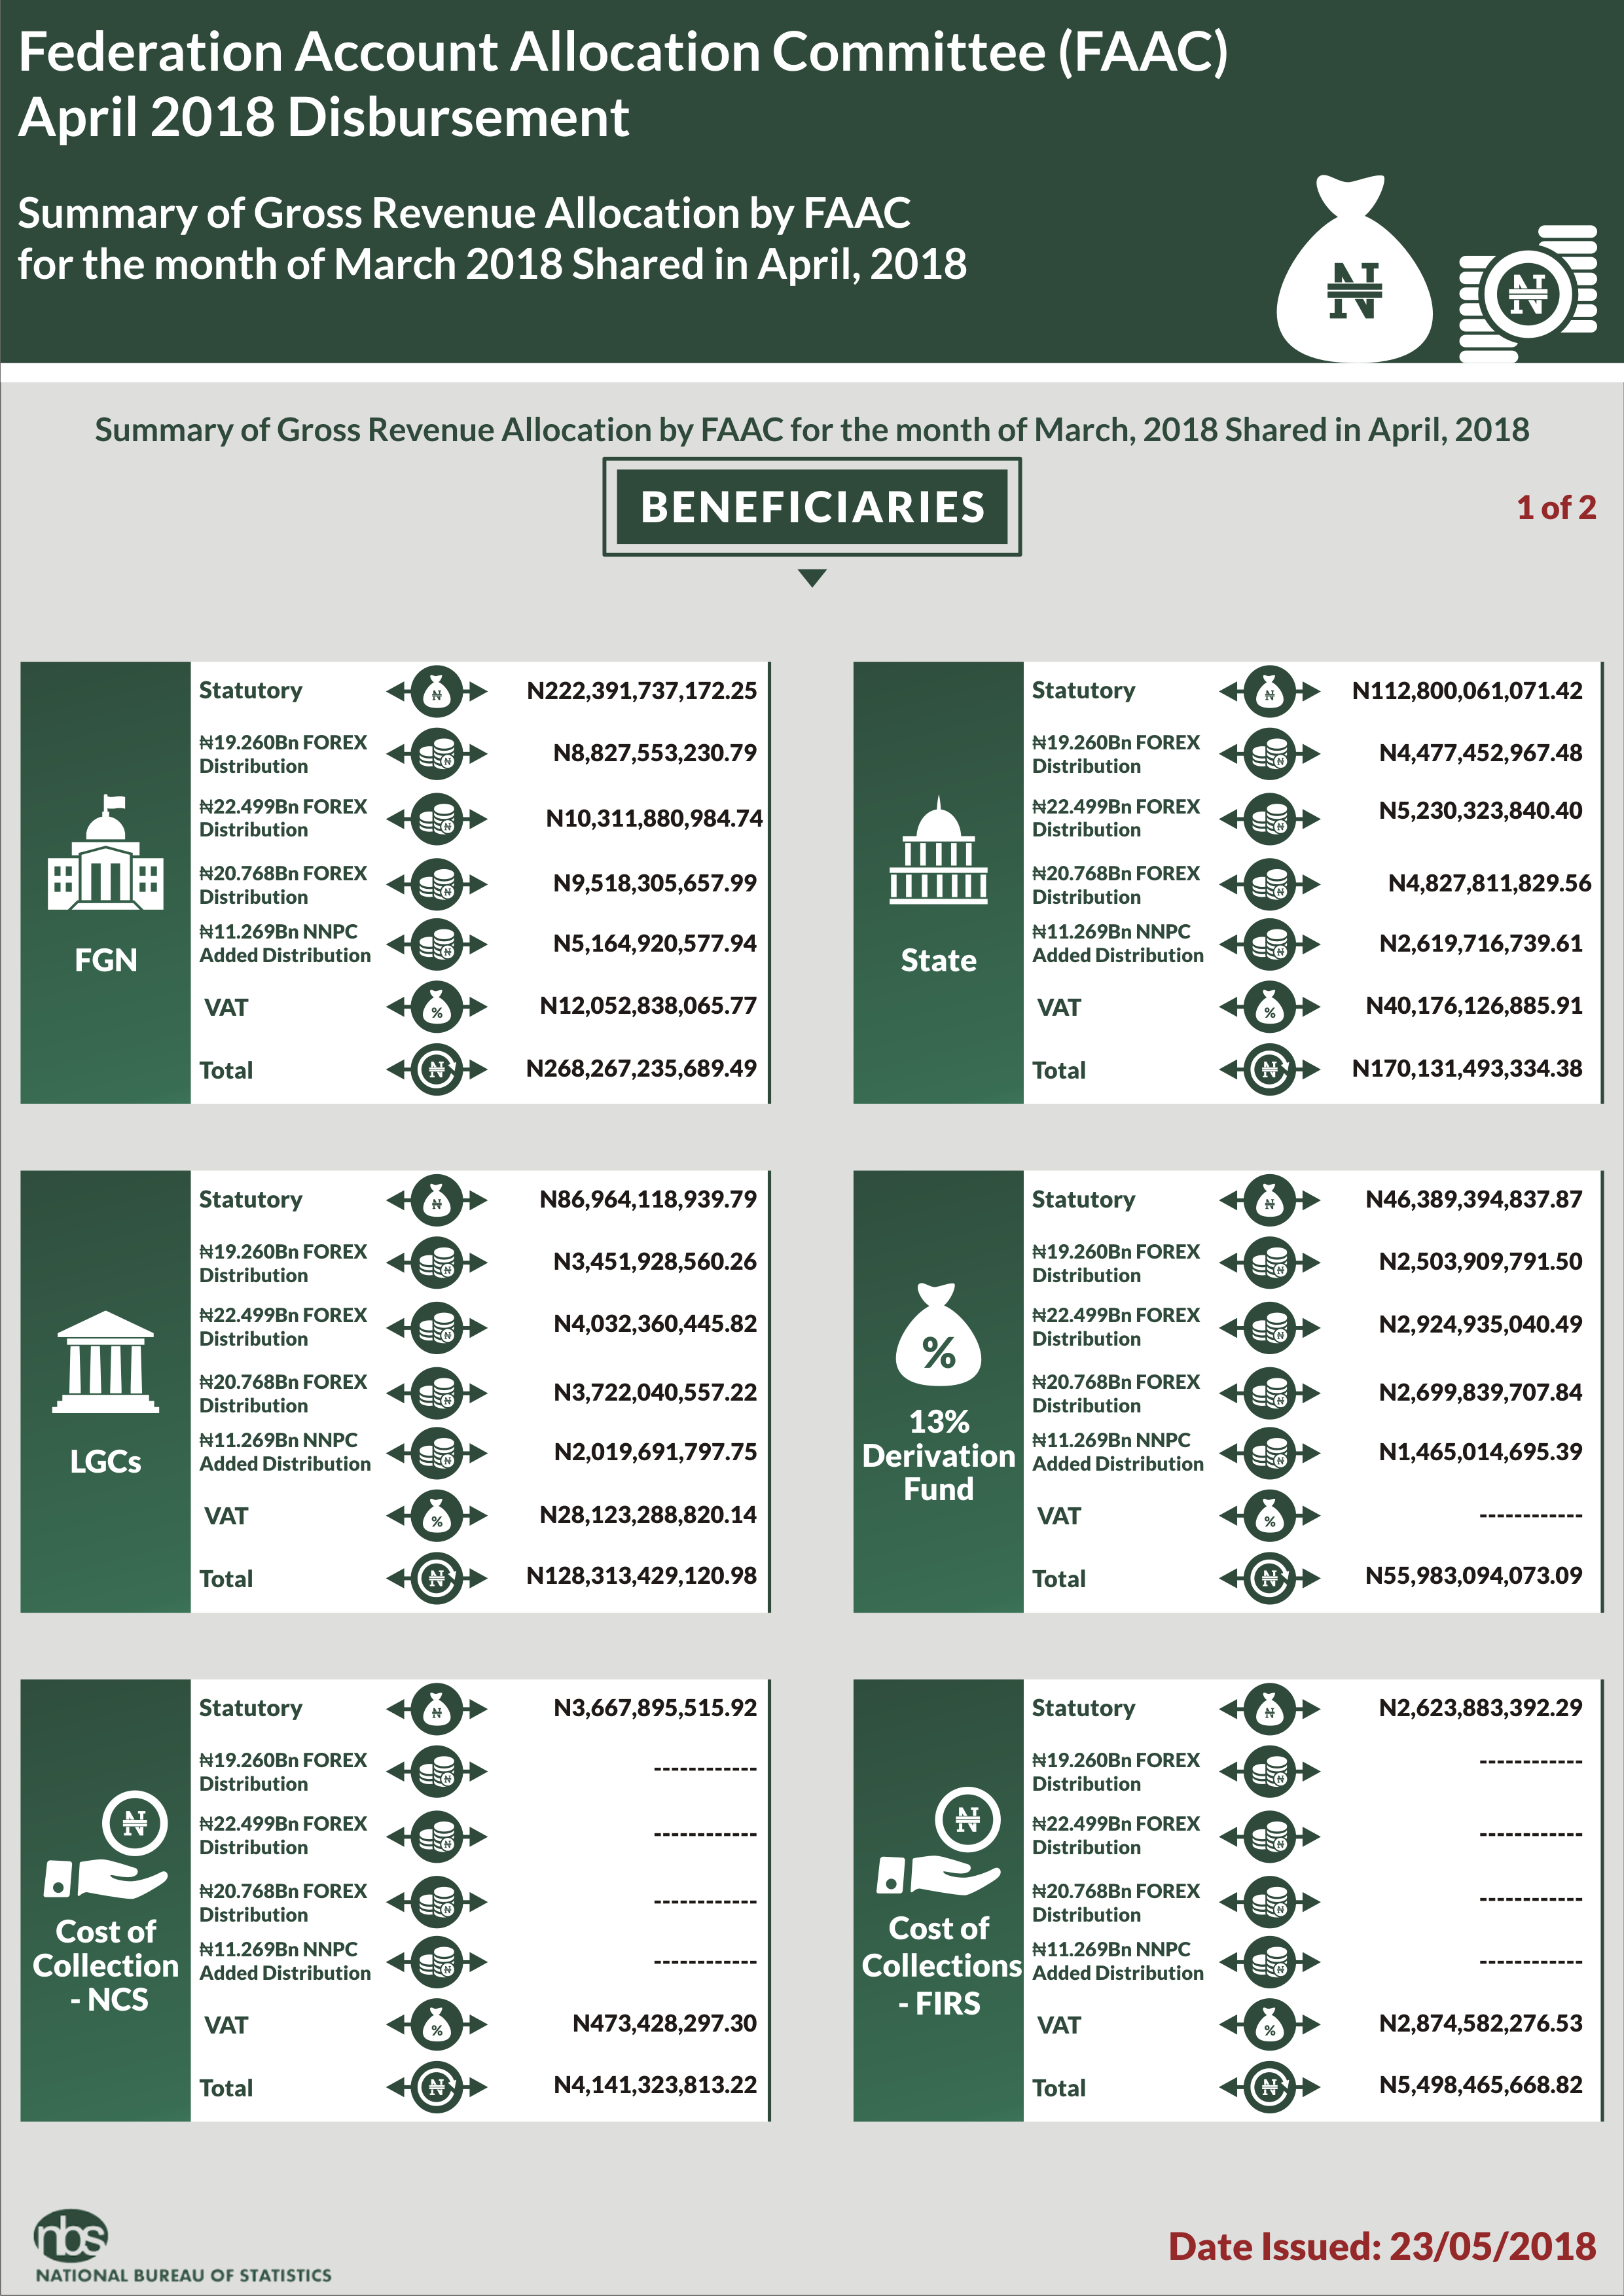 FAAC: STATES & LOCAL GOVERNMENTS RECEIVED N170.13BN & N128.32BN RESPECTIVELY IN APRIL 2018 - Brand Spur